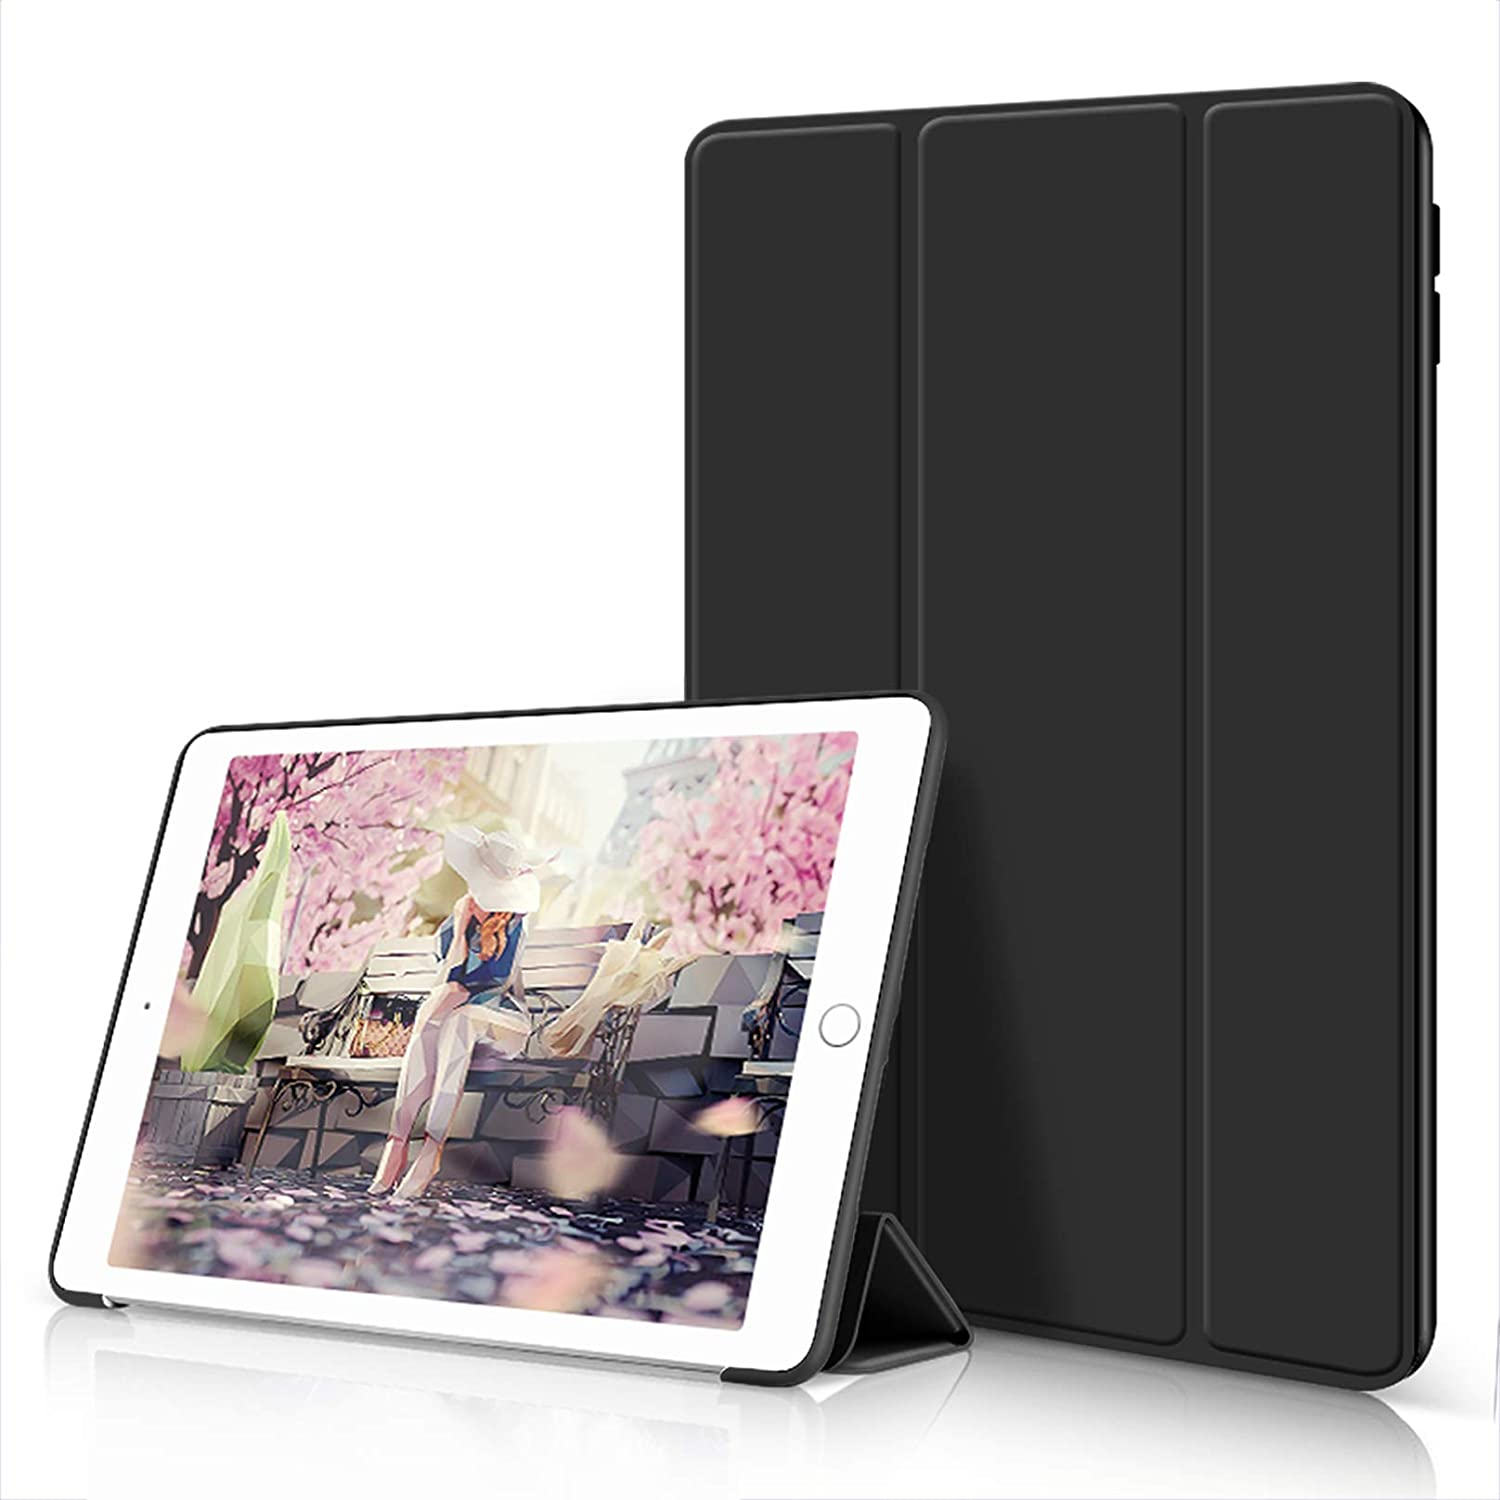 Aoub Case for iPad 6th/5th Generation 2018/2017 9.7 inch, Trifold Stand Ultra Leightweight Soft TPU Smart Cover with Auto Wake/Sleep for Apple iPad Model A1893/A1954, A1822/A1823, Black